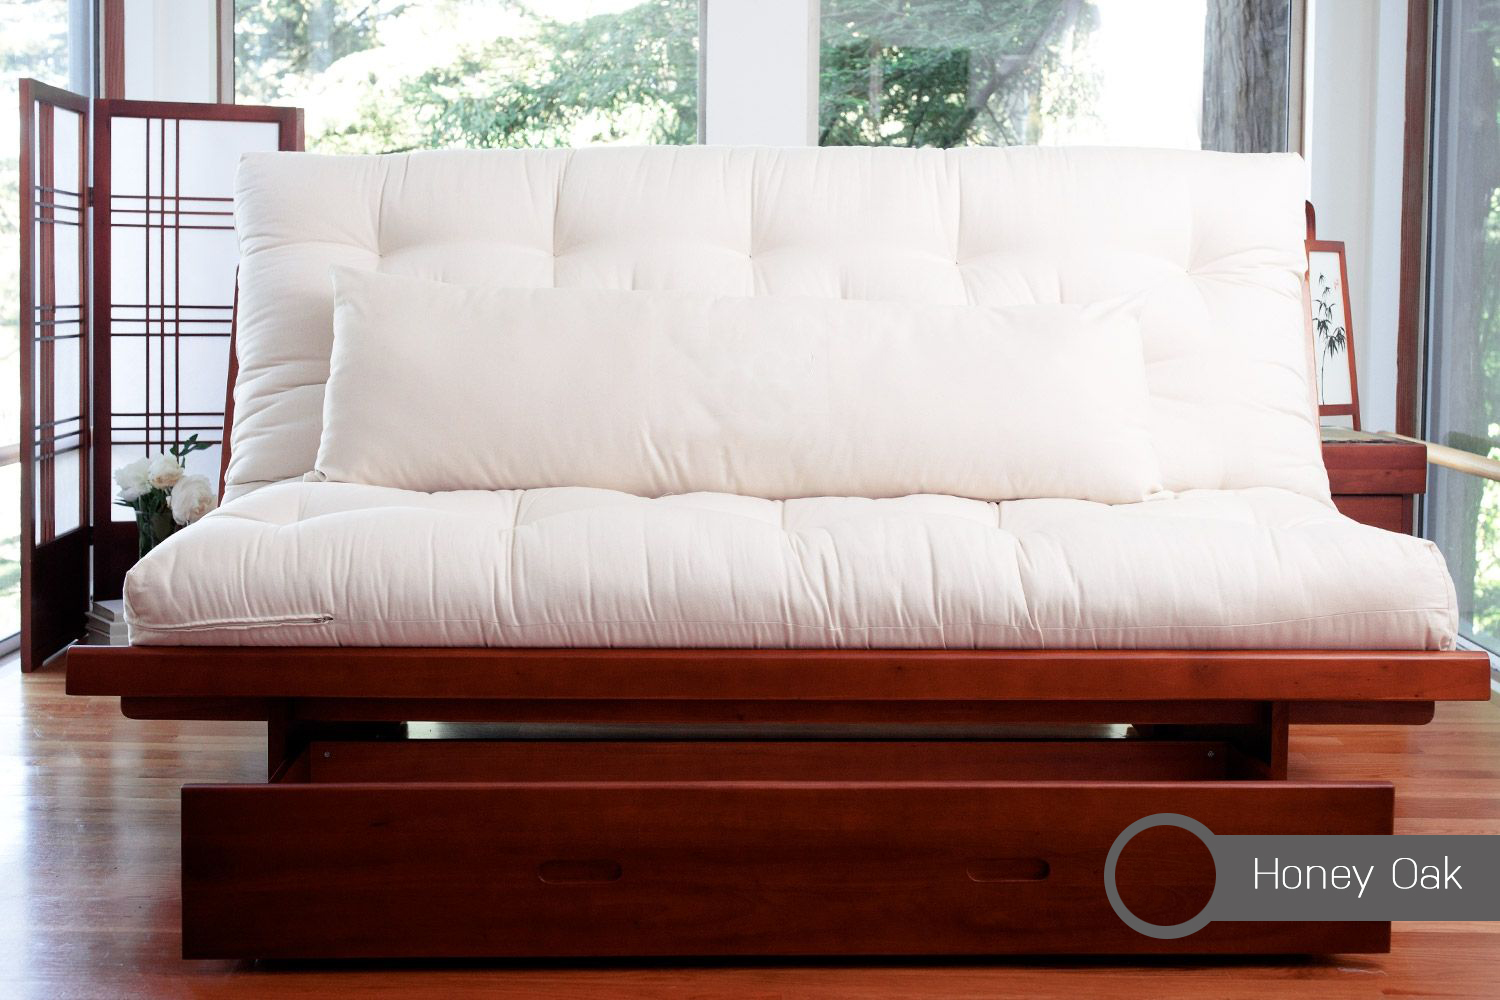 Past and present of a queen size futon